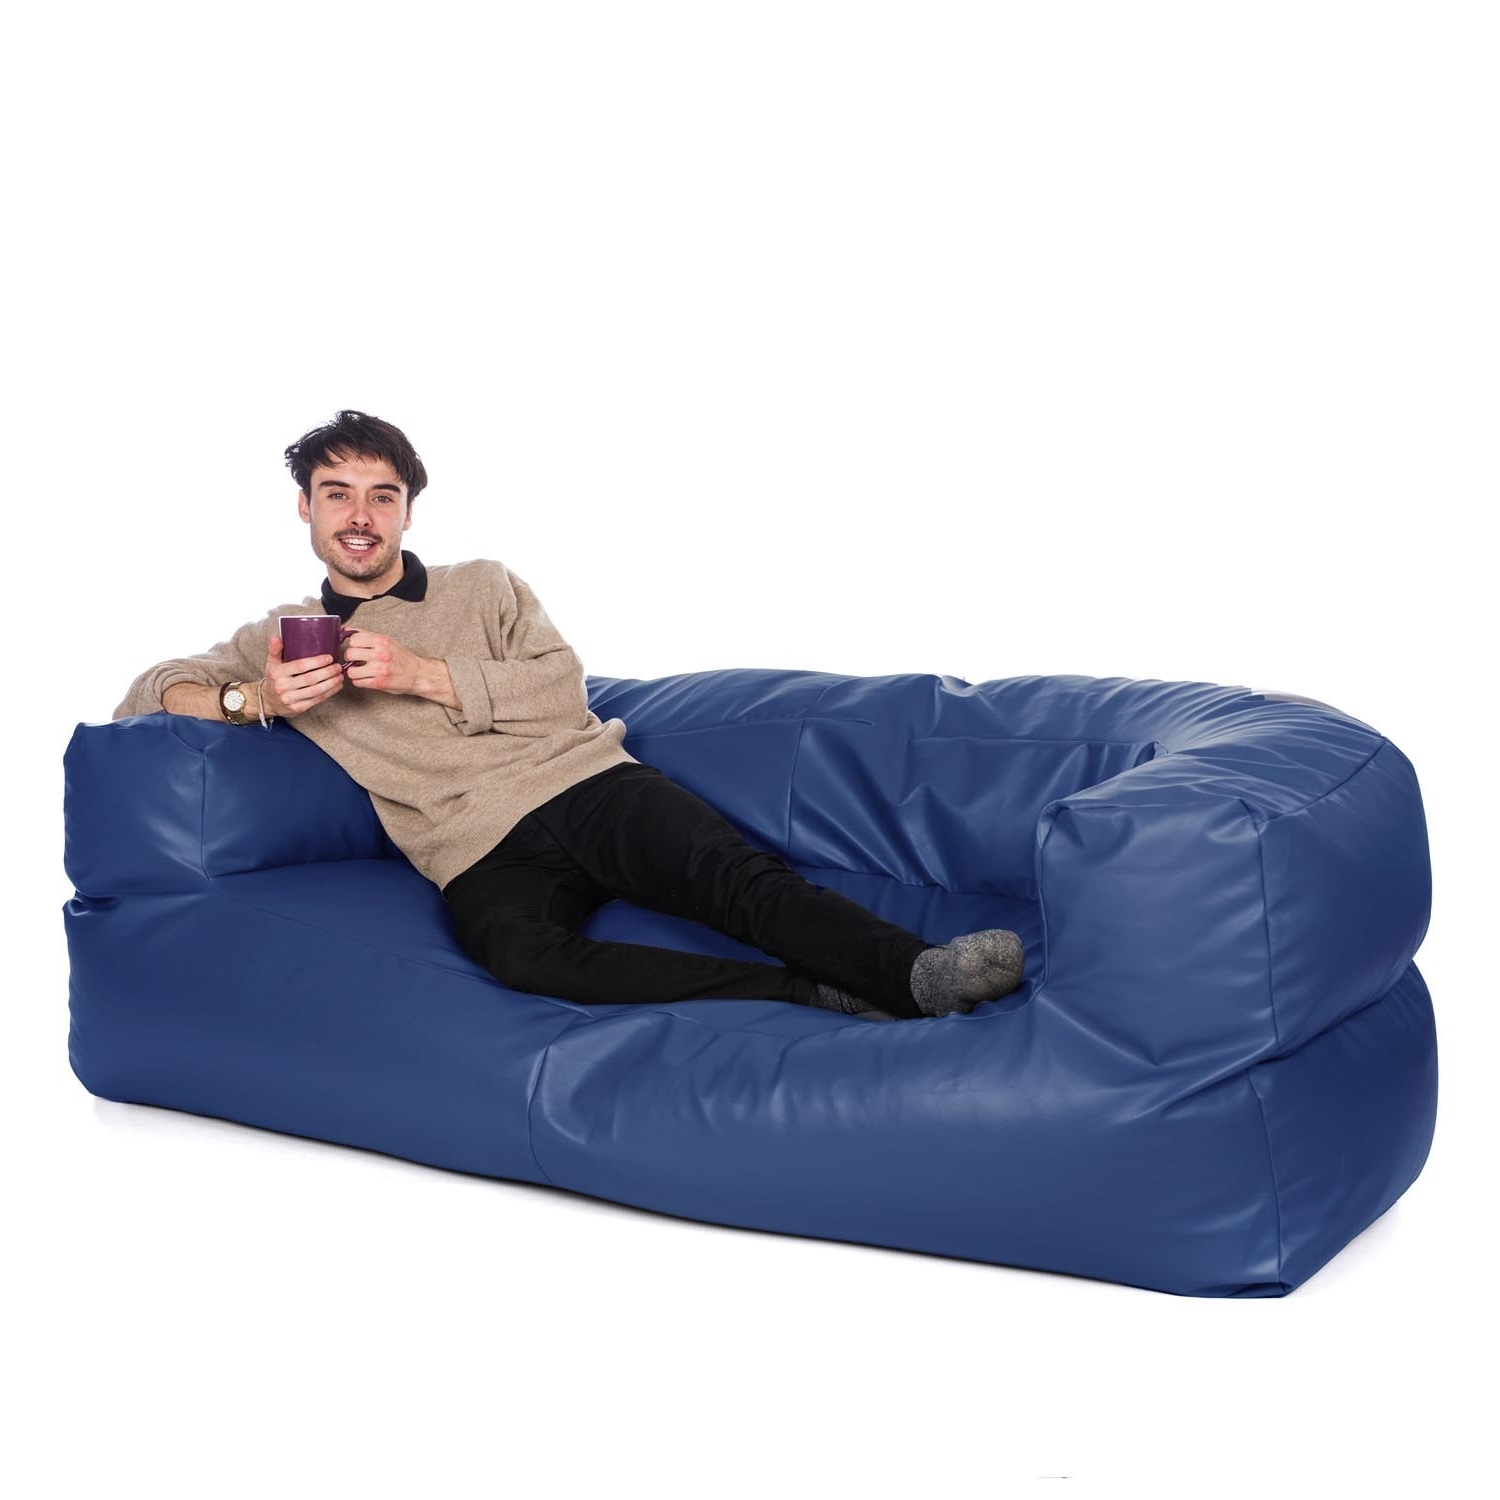 Newest Bean Bag Sofas And Chairs Throughout Big Bean Bag Couch Comforts You More Than You Expect – Furniture (View 2 of 15)